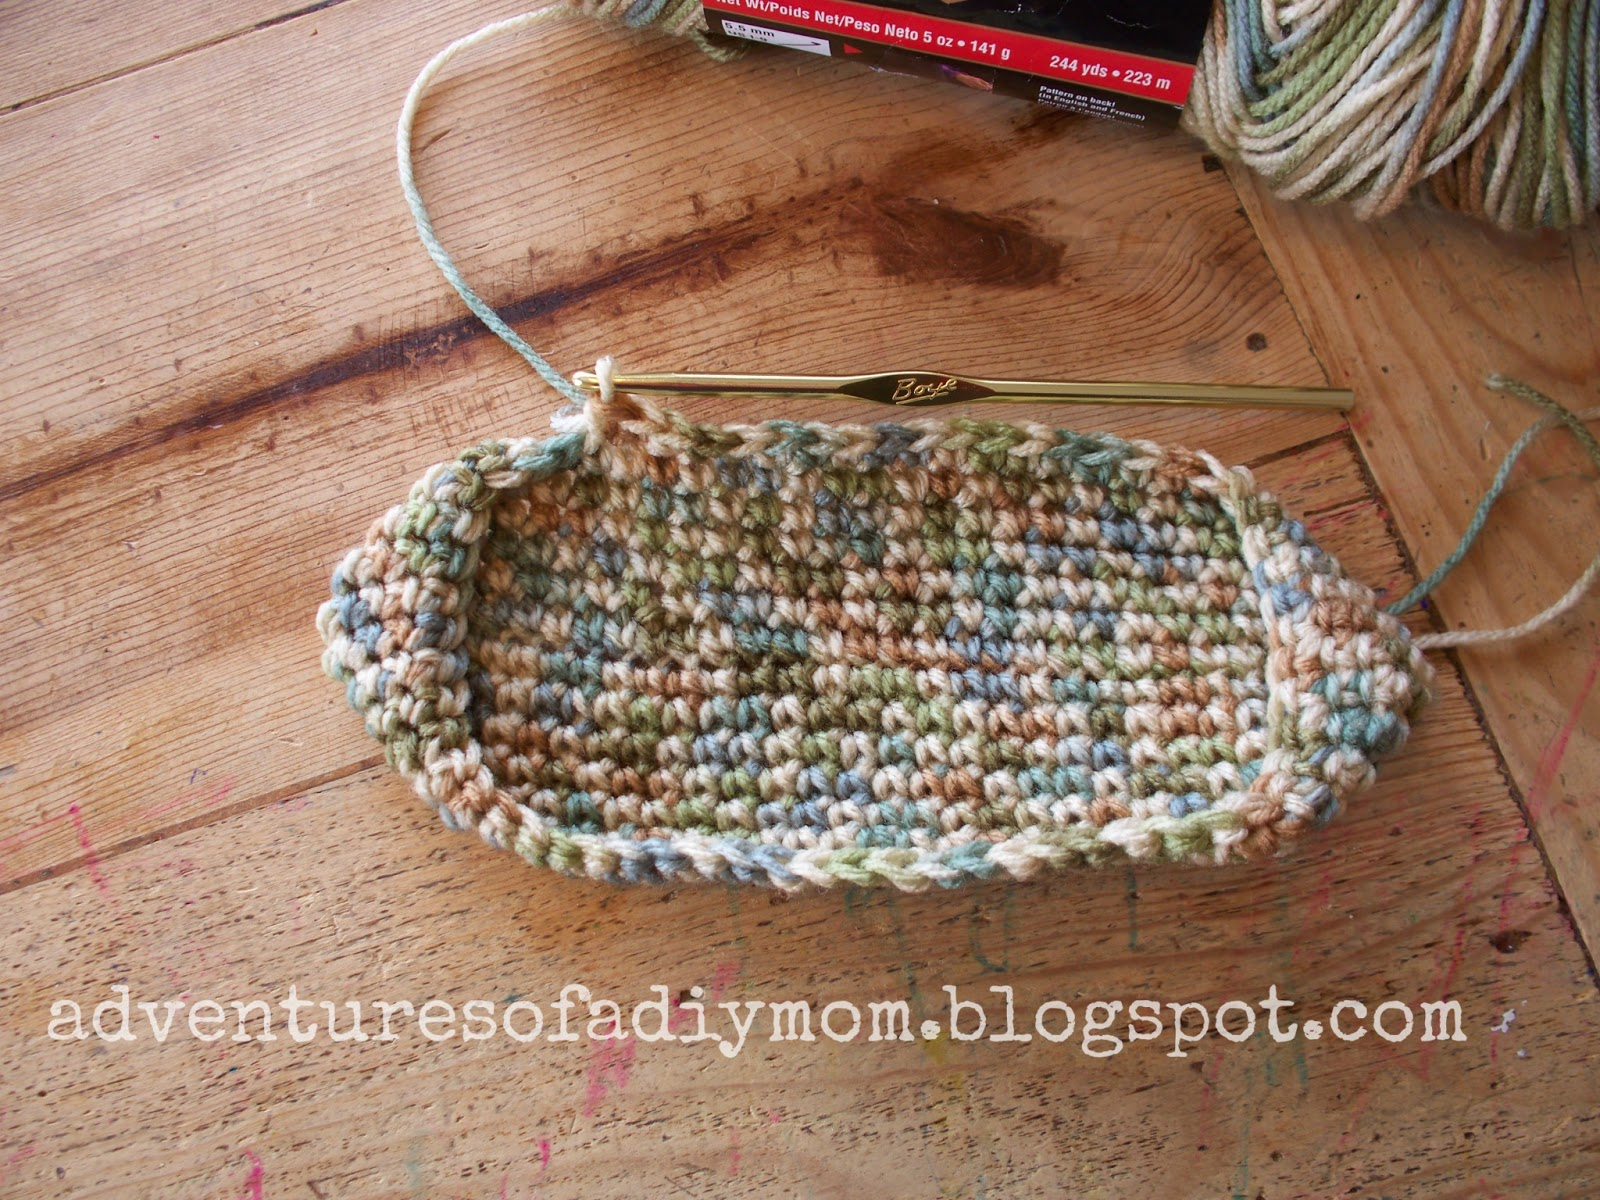 How To Crochet A Hotpad Super Easy Version Adventures Of A Diy Mom